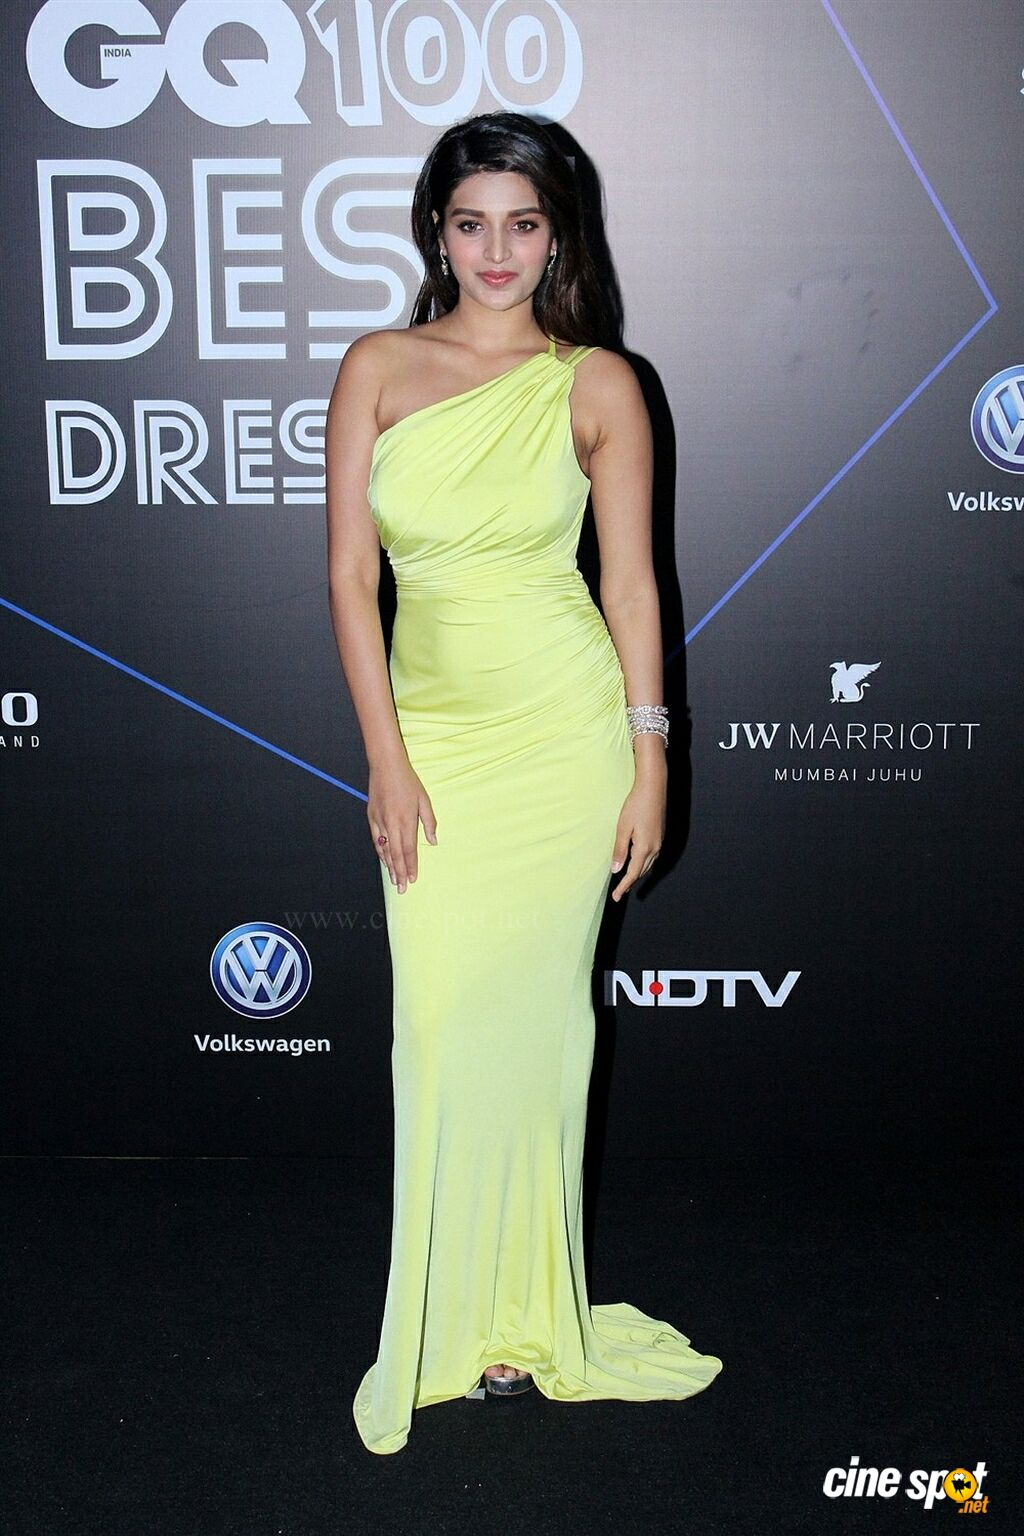 Nidhhi Agerwal at GQ Best Dressed Awards 2019 Red Carpet (8)